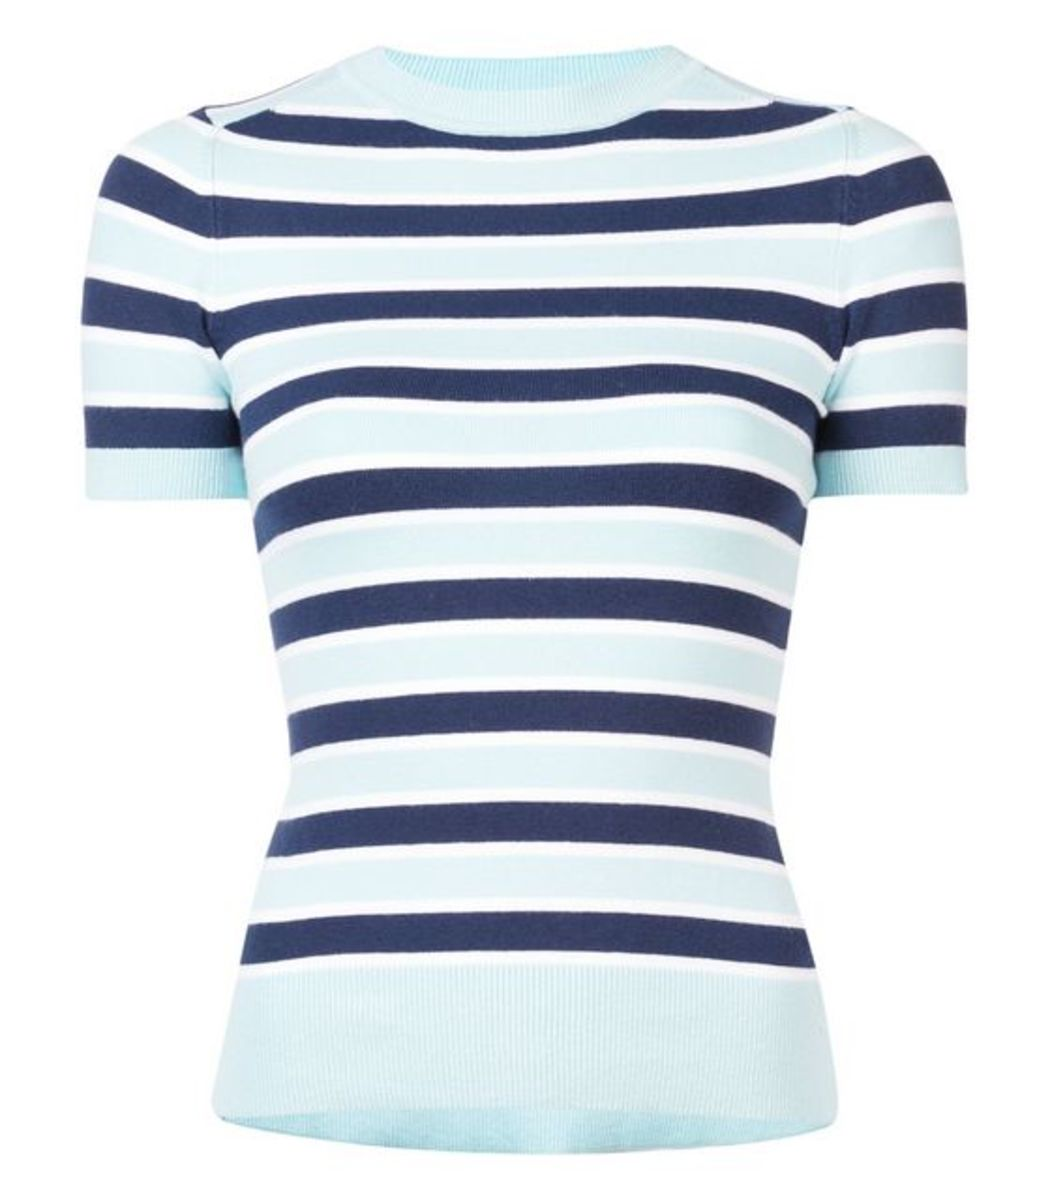 JOOSTRICOT Light Blue/Navy Striped Tshirt